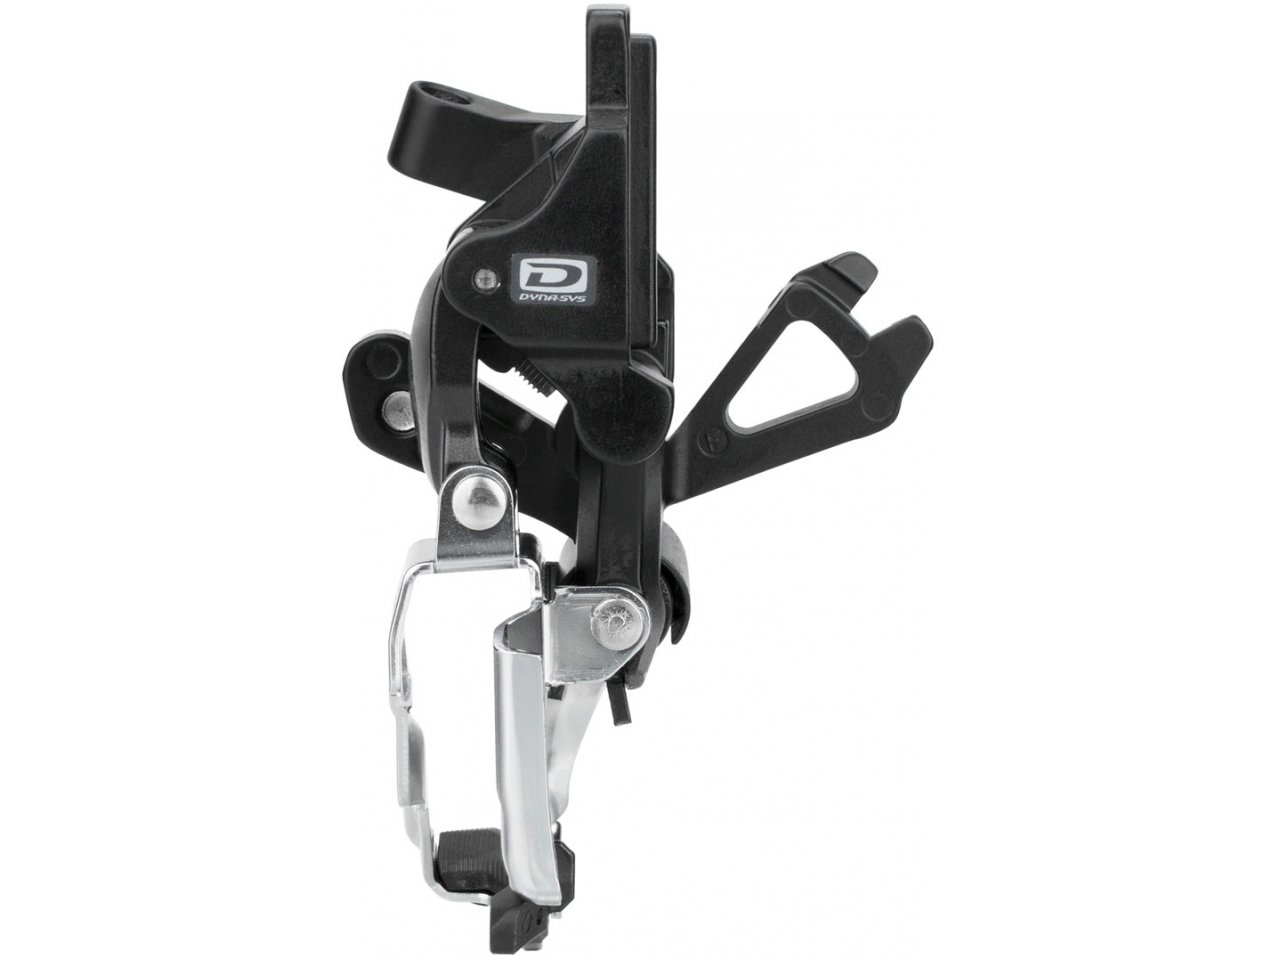 NEU DOWN-PULL SHIMANO FD-M618 2x10speed DEORE Umwerfer TOP-SWING LOW CLAMP